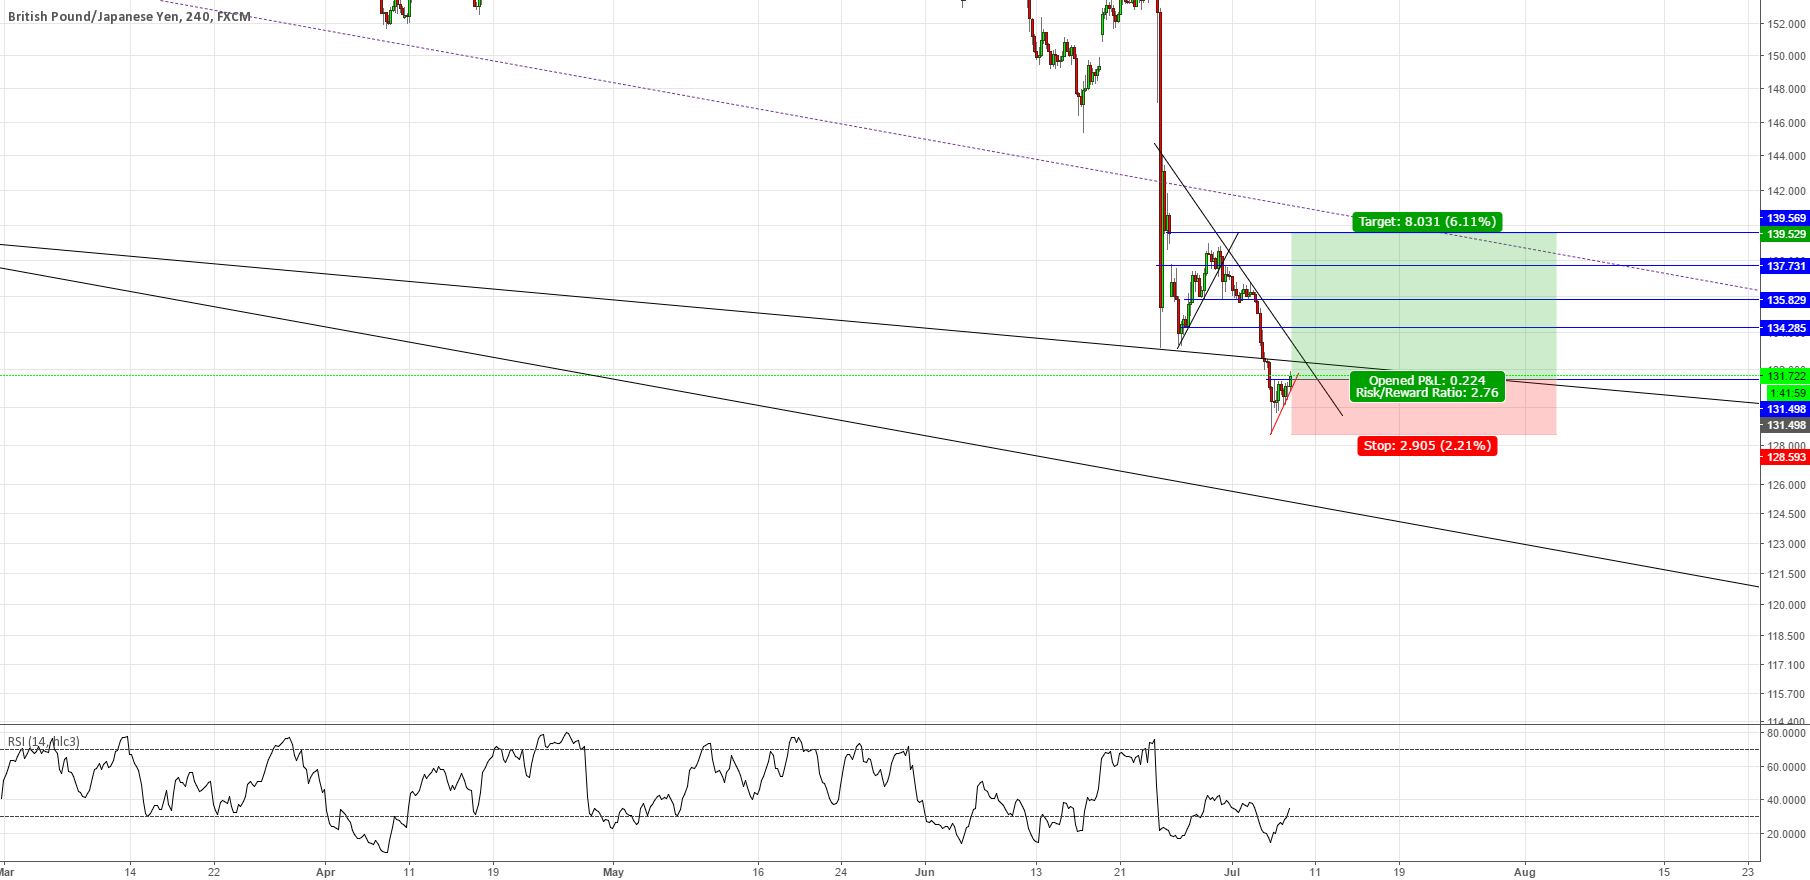 #GBPJPY the horizontal resistance is gone